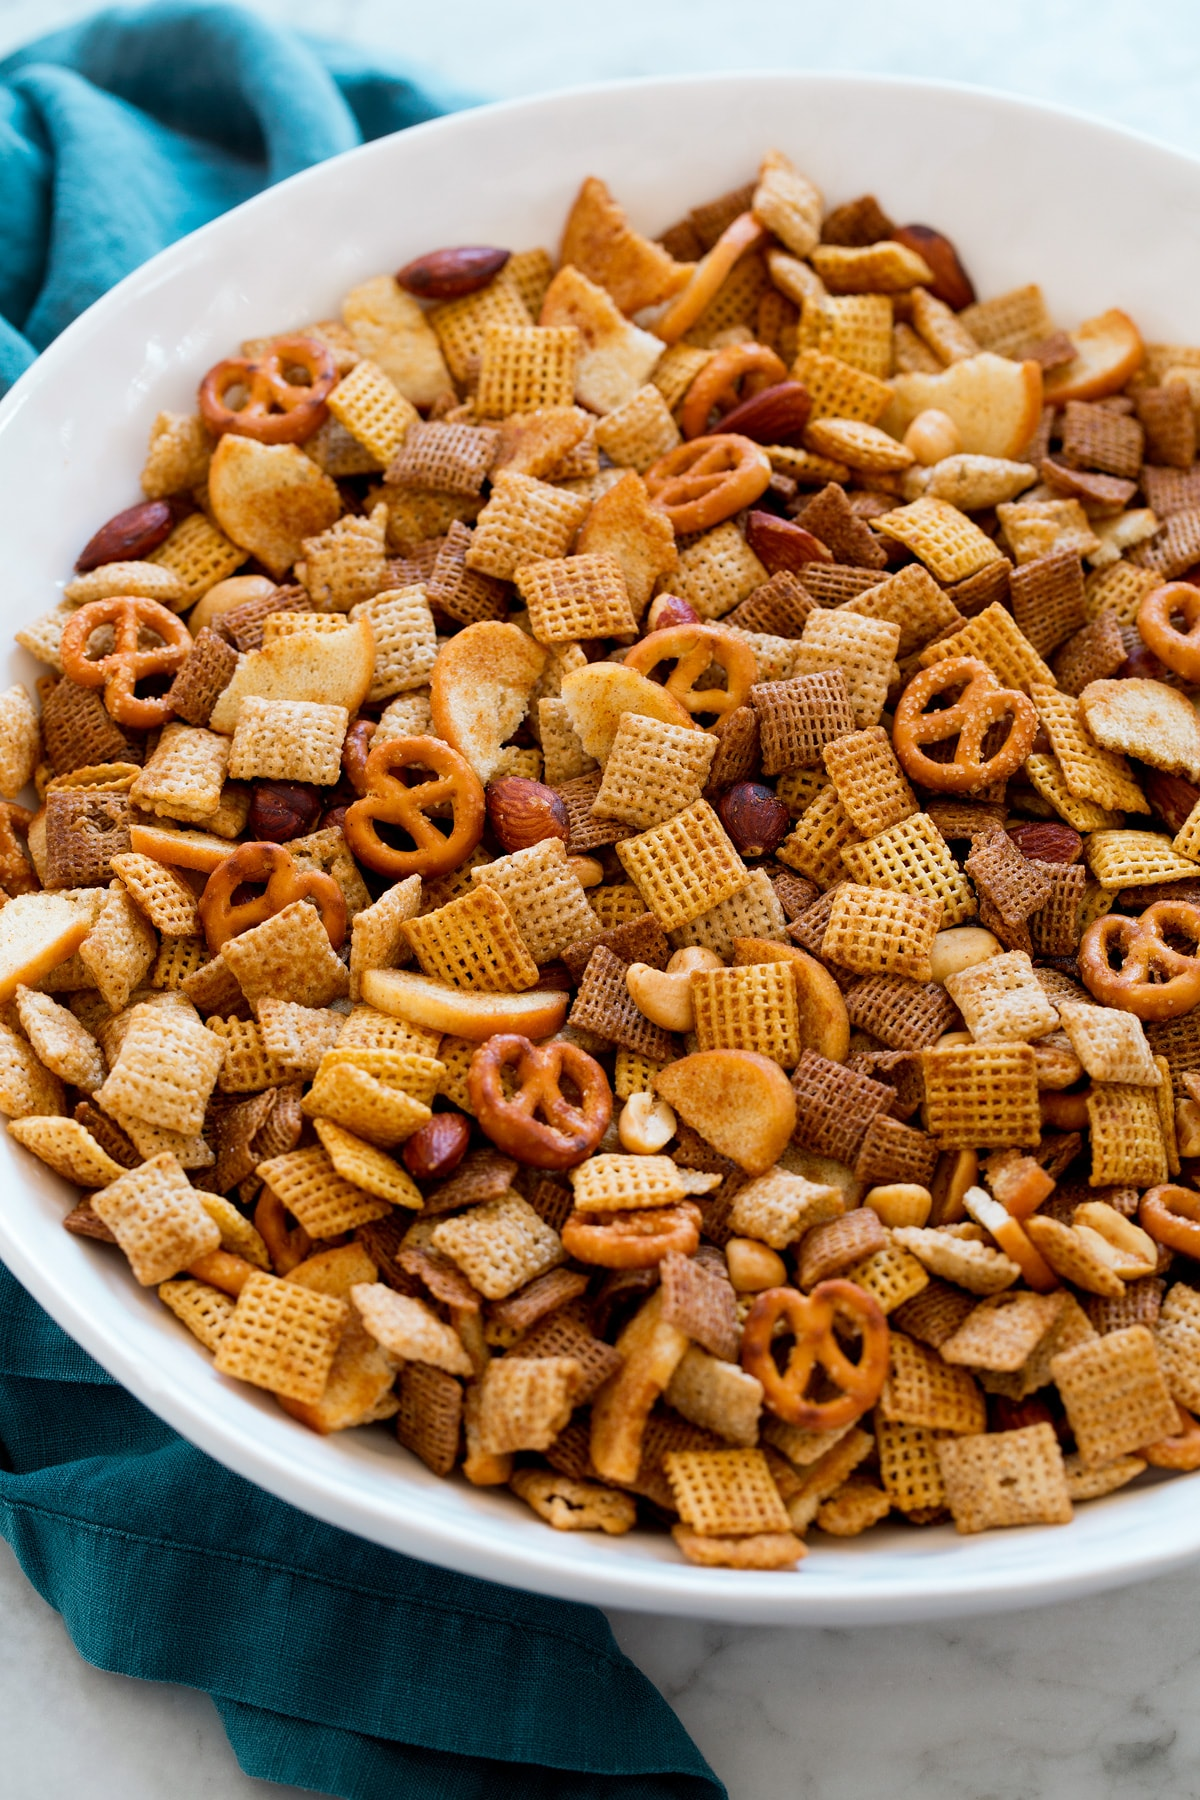 Homemade Chex Mix shown from a side angle in a large white serving bowl.